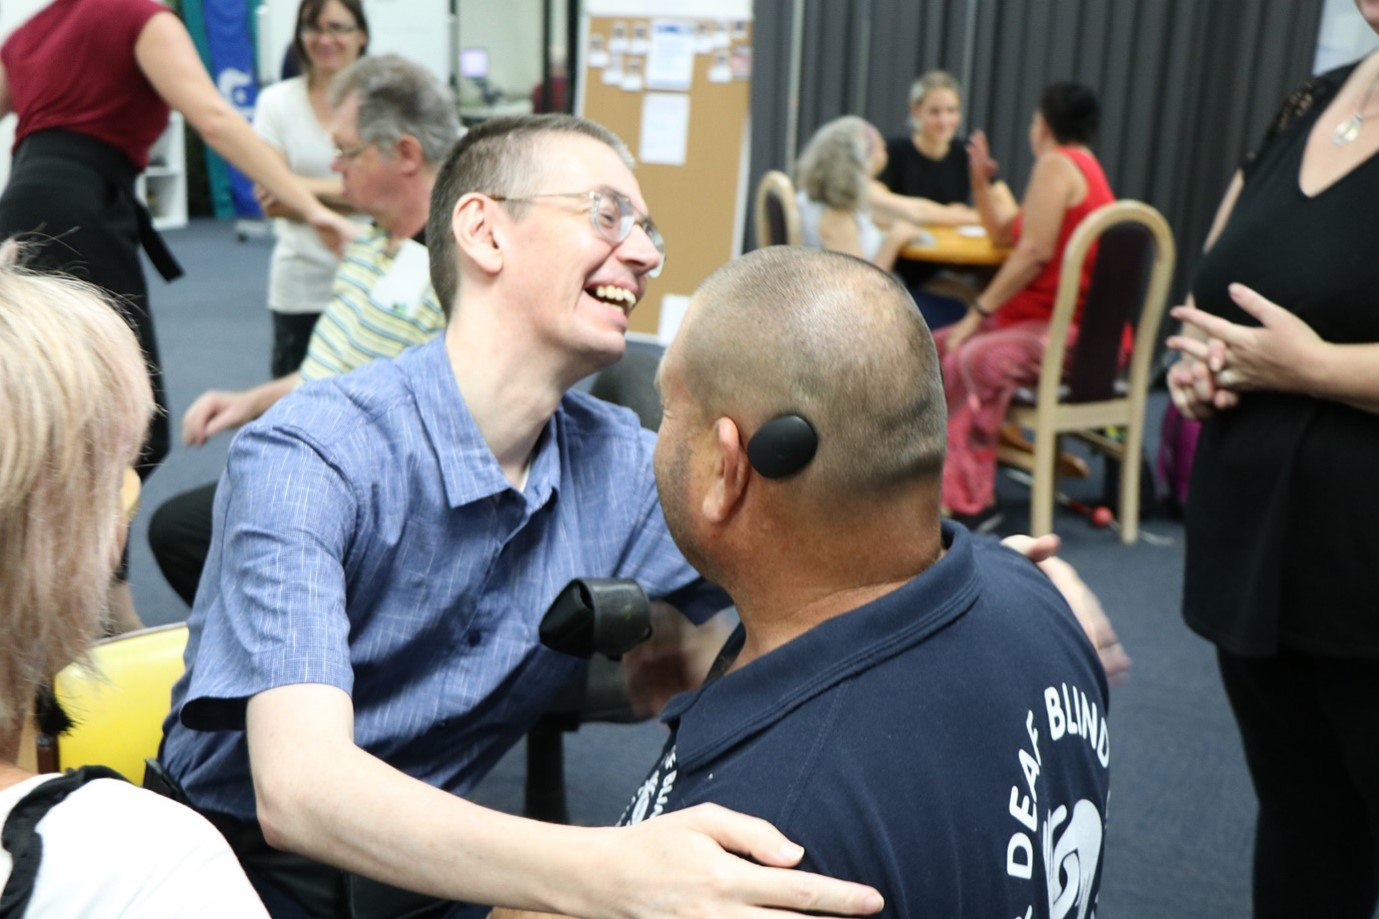 A photo of two Deafblind members smiling and hugging